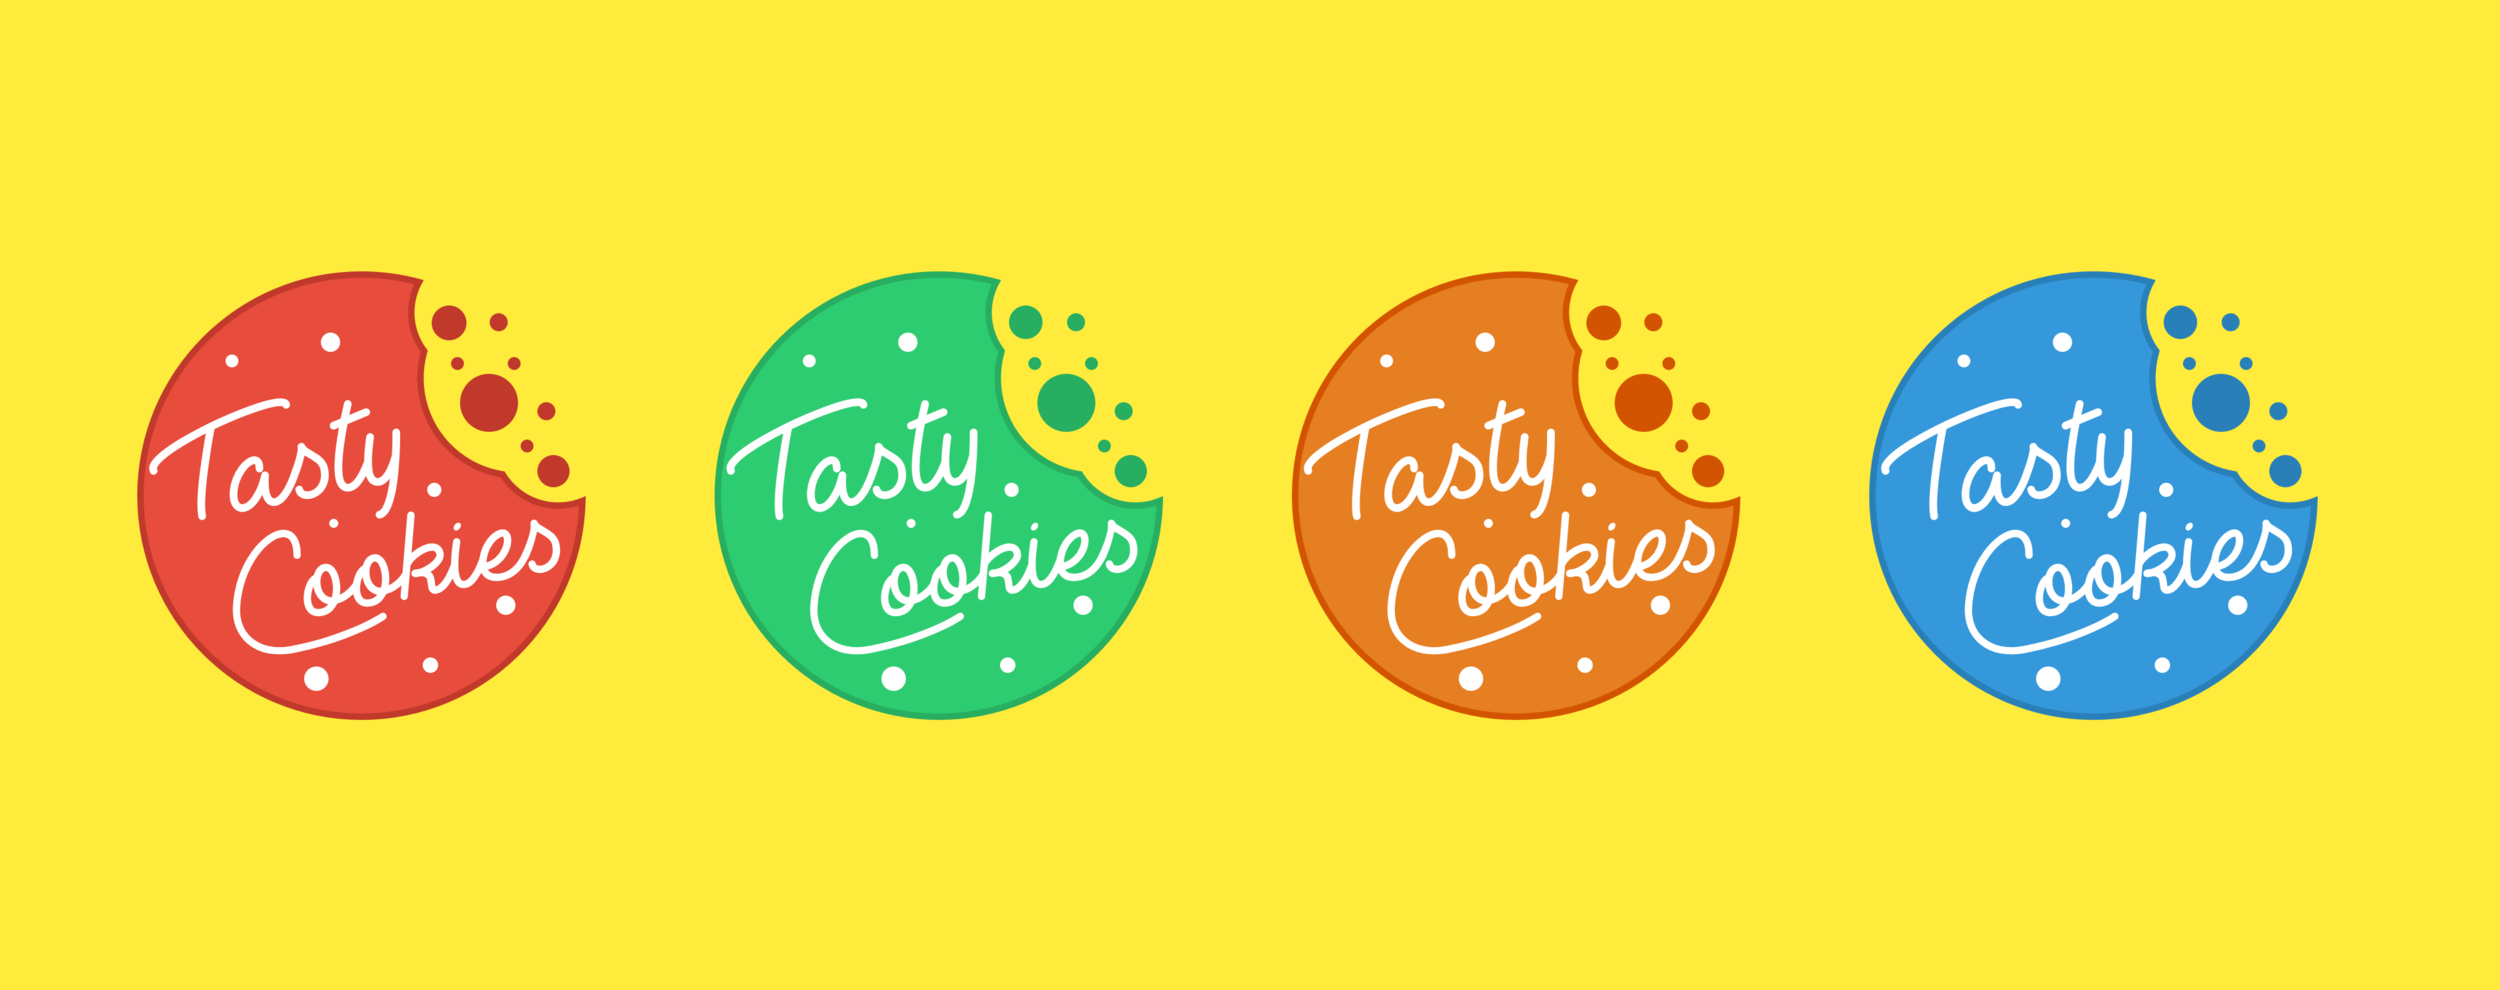 Get Cookie Logo Design